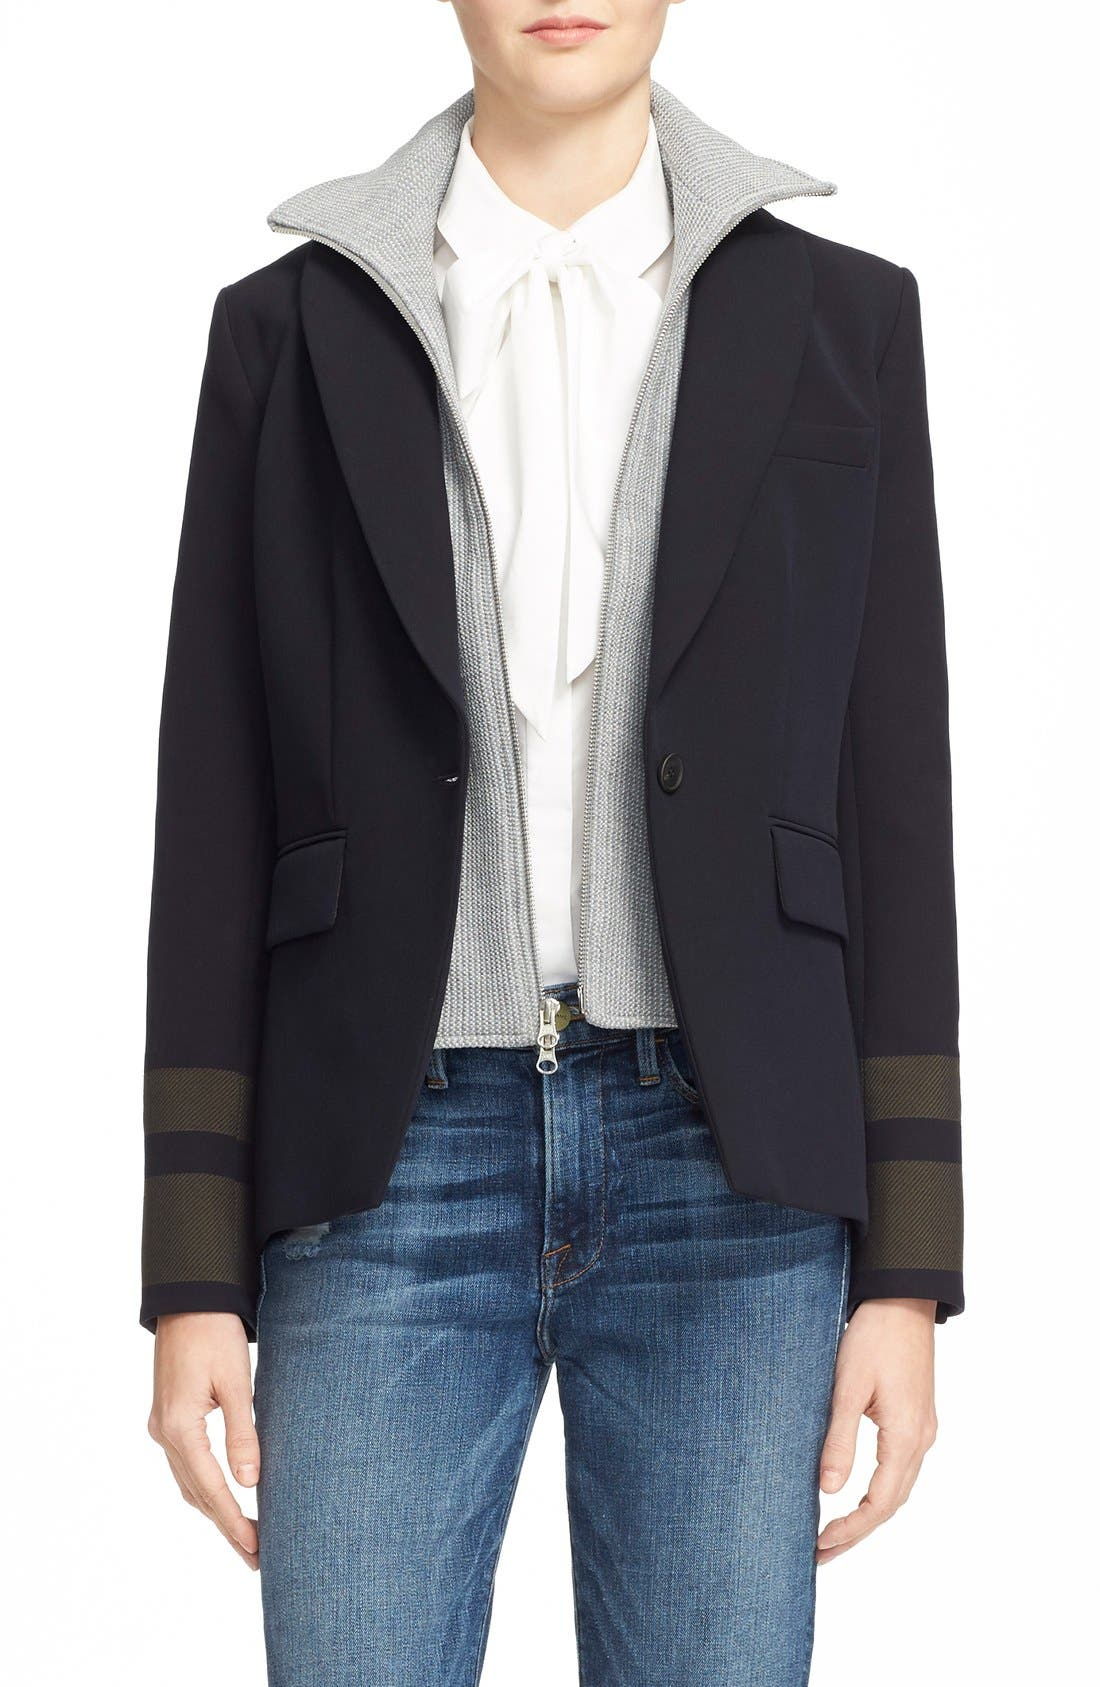 Alternate Image 1 Selected - Veronica Beard Cutaway Jacket with Removable Knit Dickey